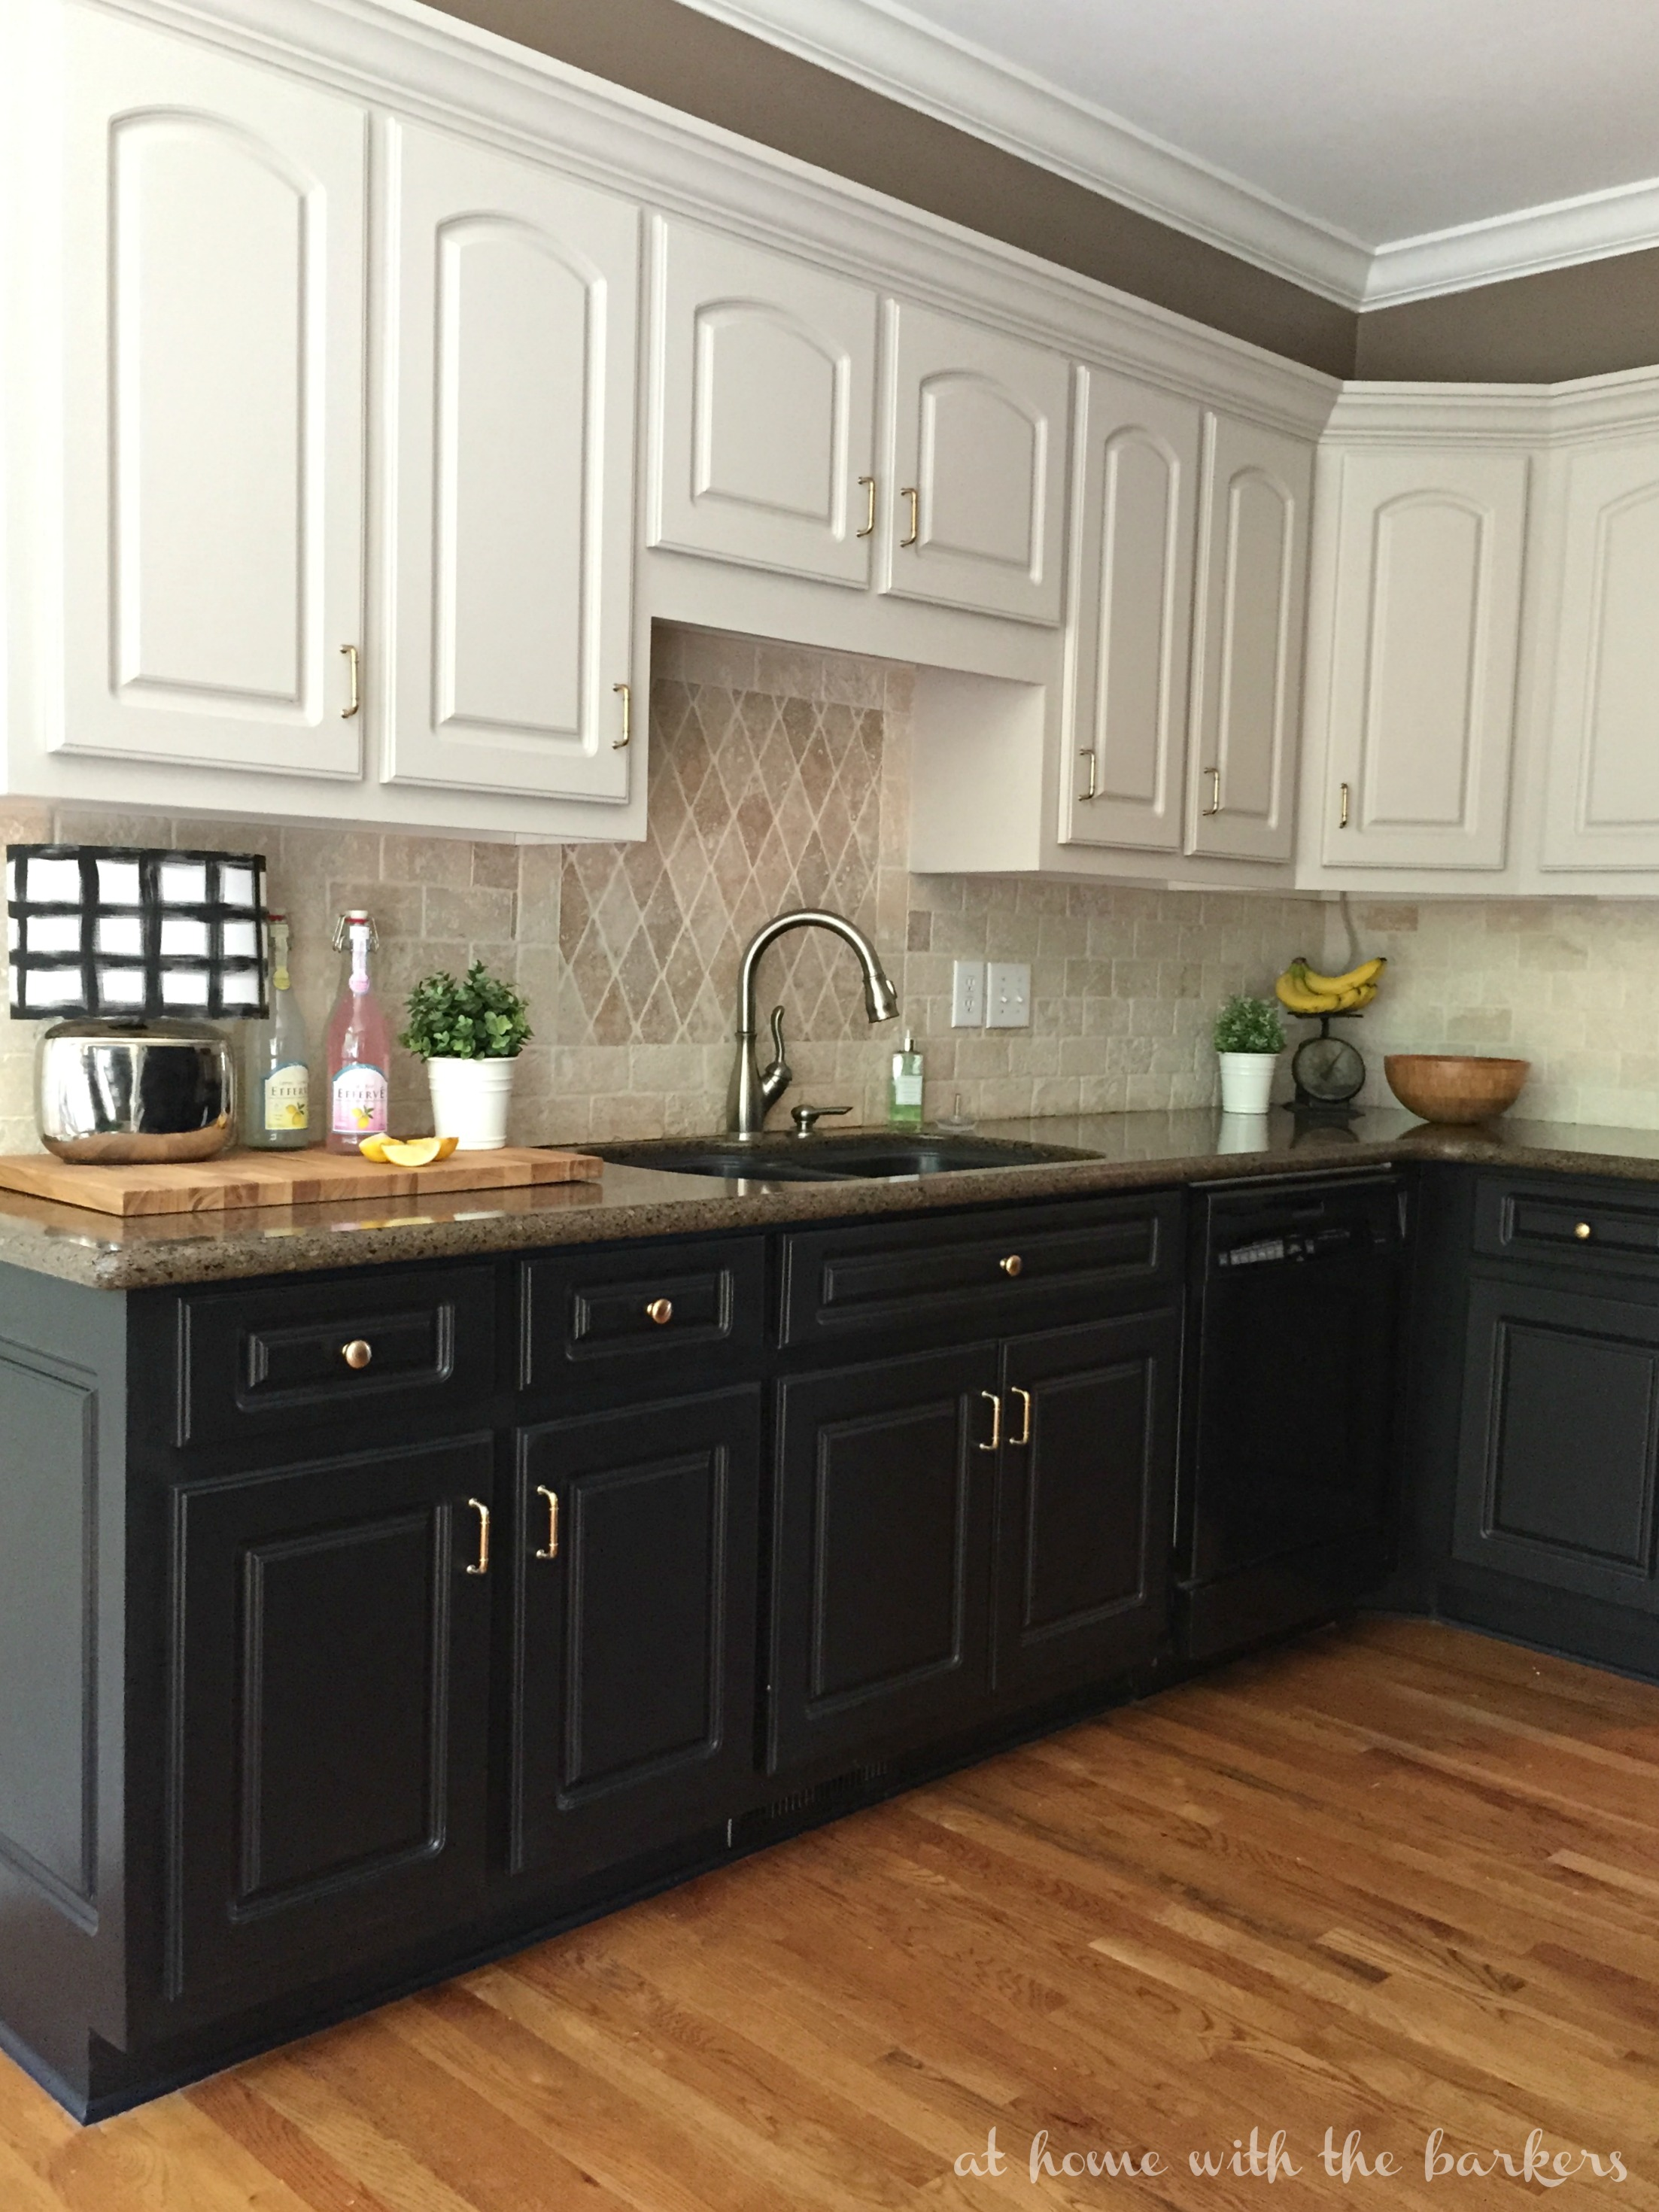 Black Kitchen Cabinets The Ugly Truth - At Home with The